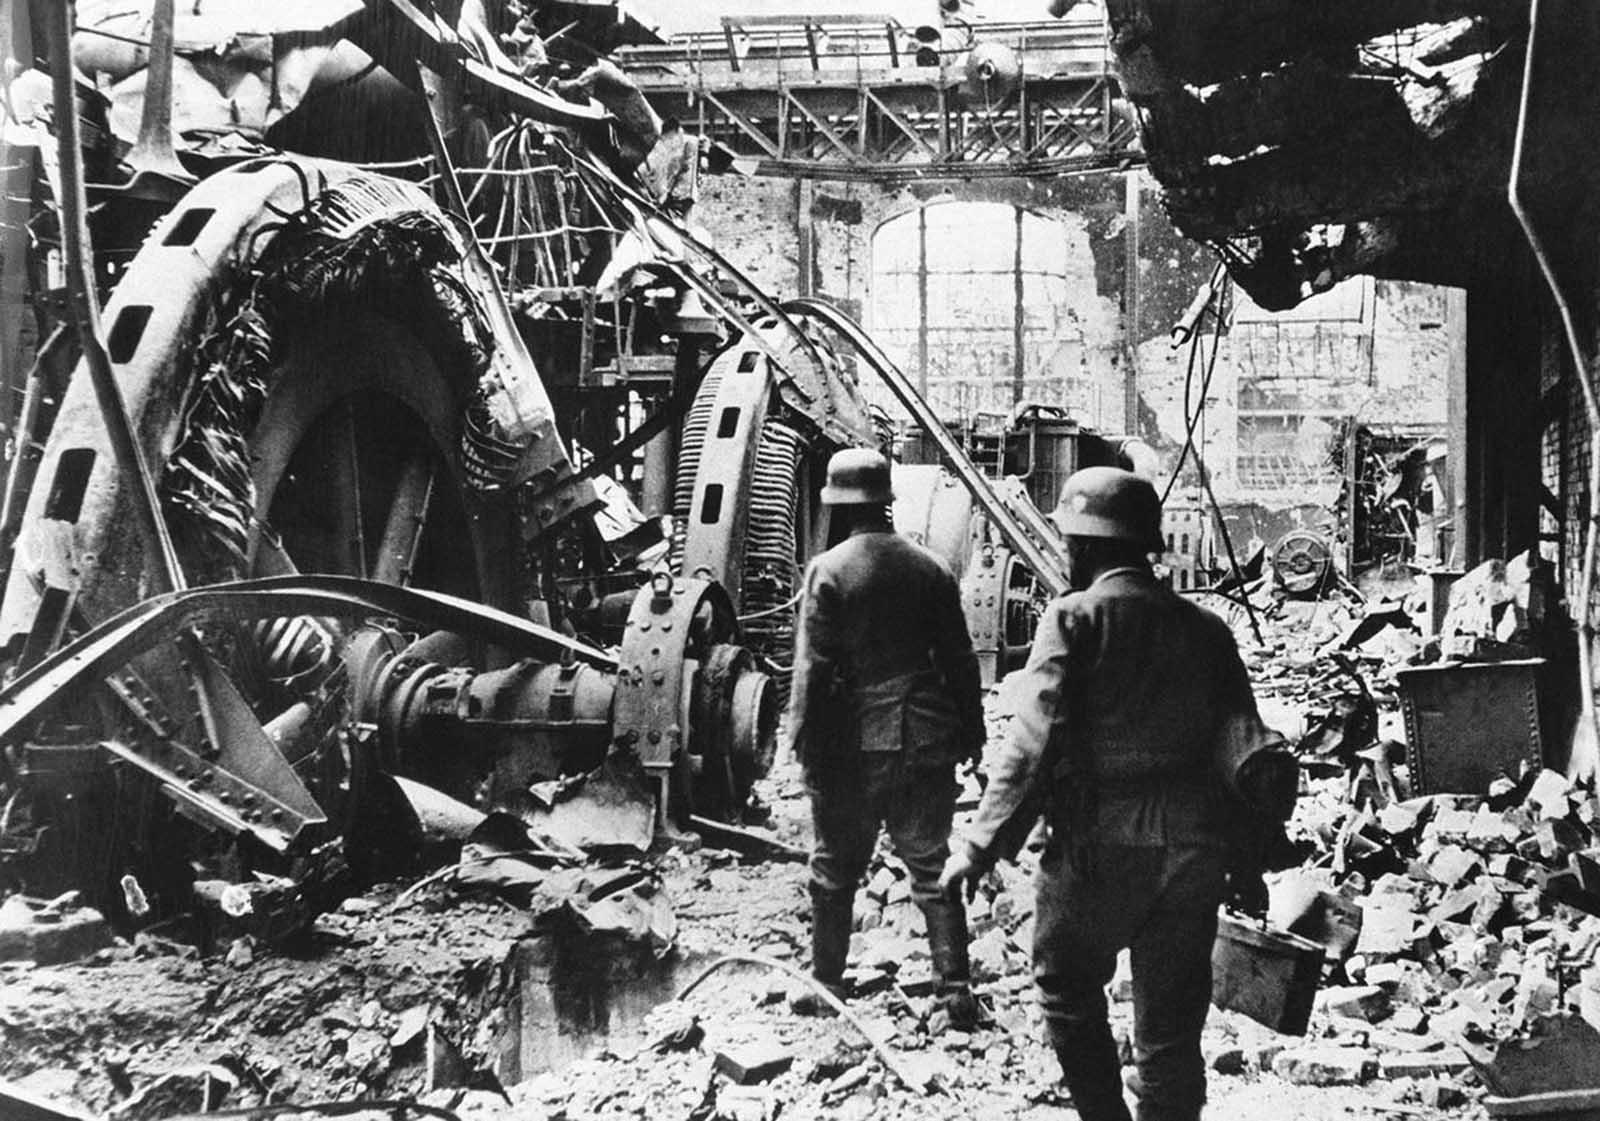 German troops pass through a wrecked generating station in the factory district of Stalingrad, on December 28, 1942.